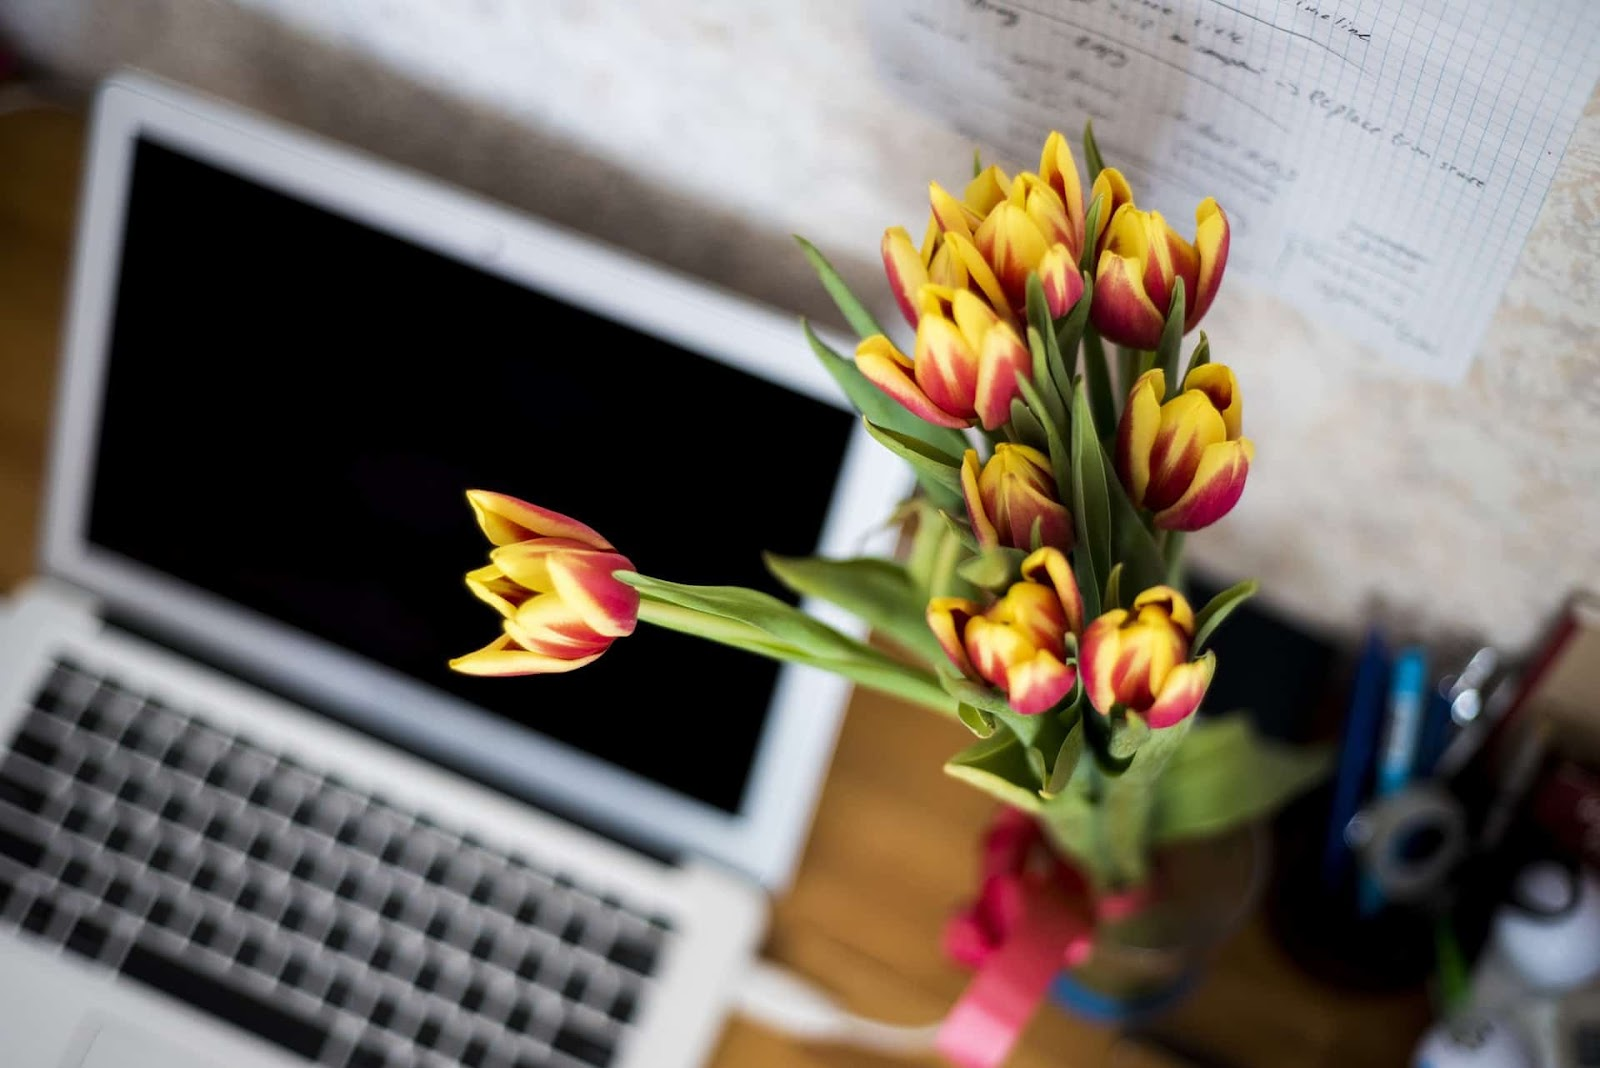 Laptop and Tulips